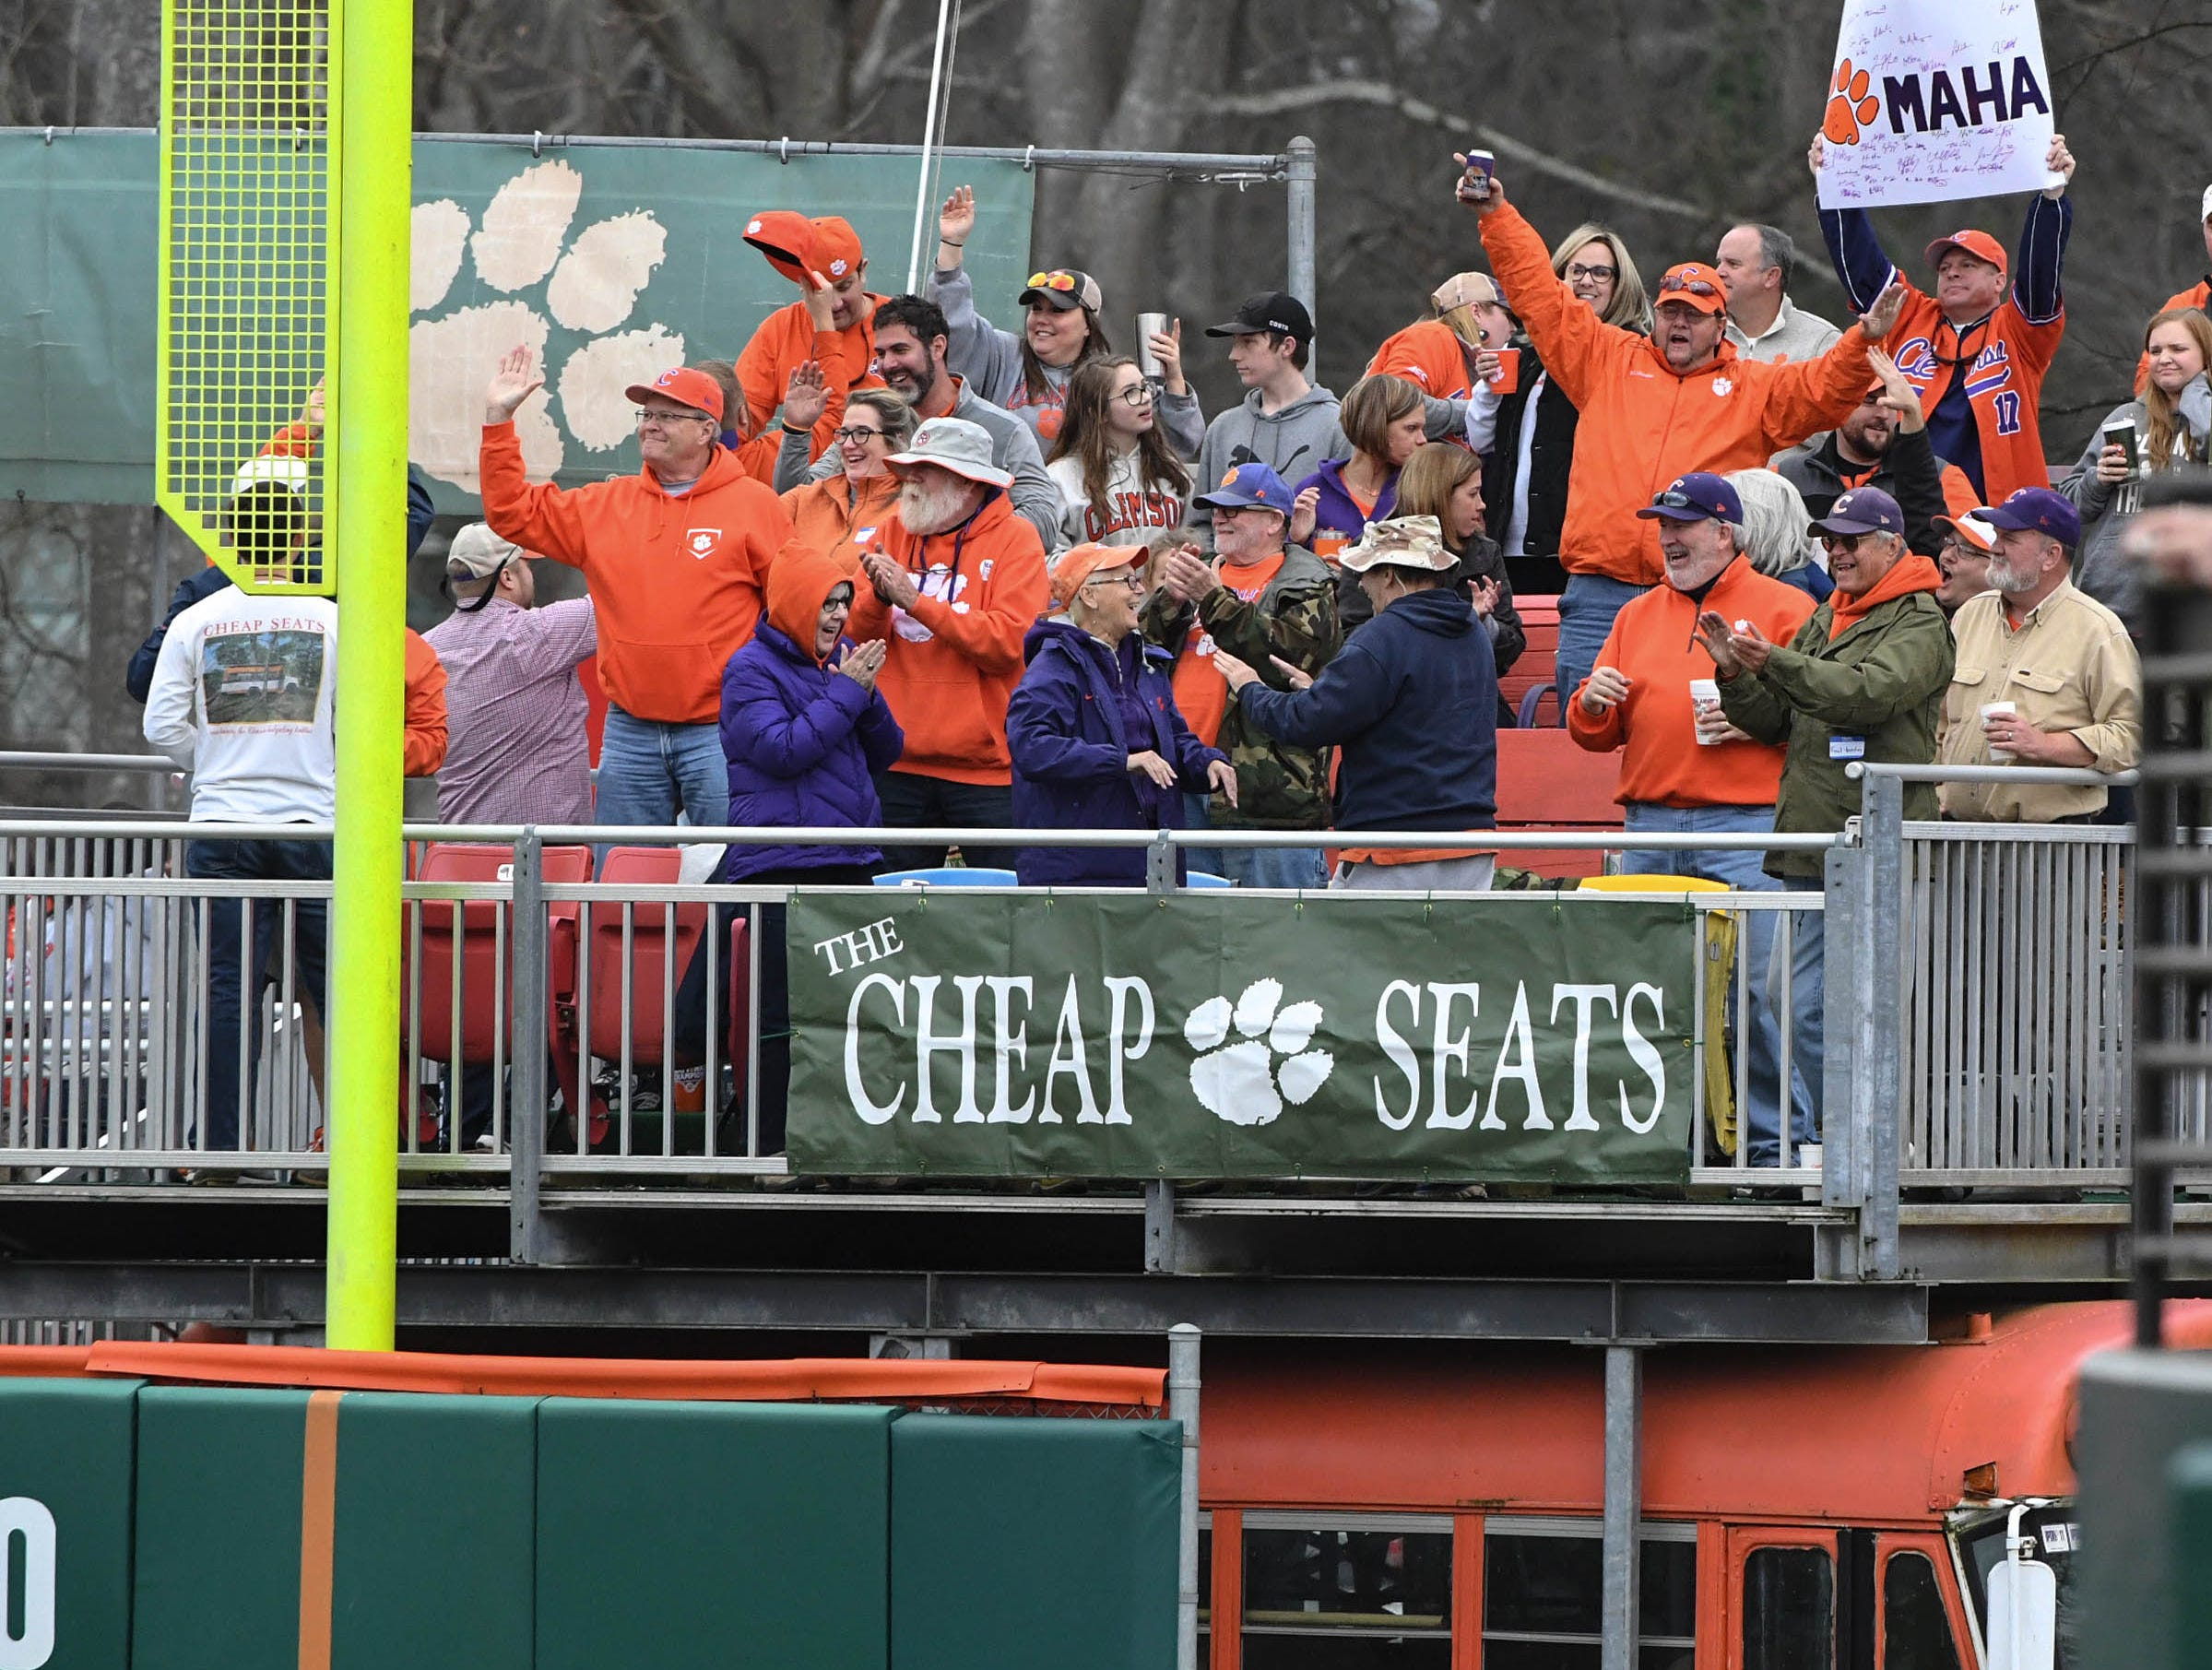 Clemson baseball Cheap Seat fans celebrate after junior Logan Davidson(8) hit a three-run home run against South Alabama during the bottom of the fifth inning at Doug Kingsmore Stadium in Clemson Friday, February 15, 2019.